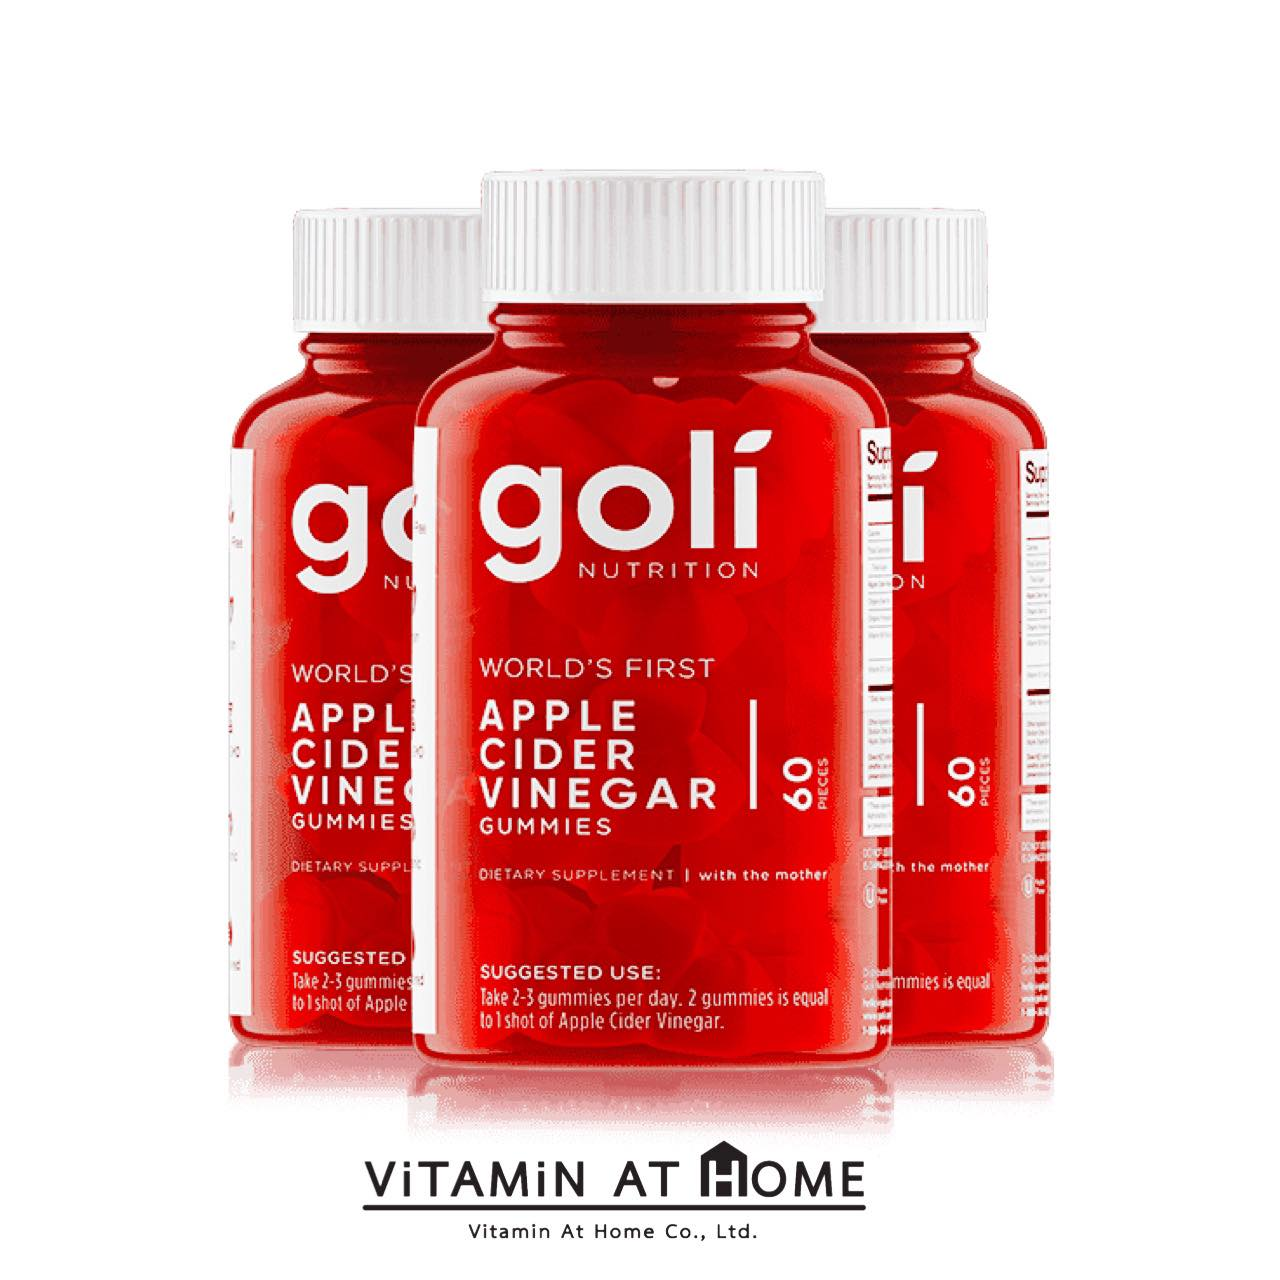 Goli Apple Cider Vinegar Gummies 3 กระปุก (3x60's)